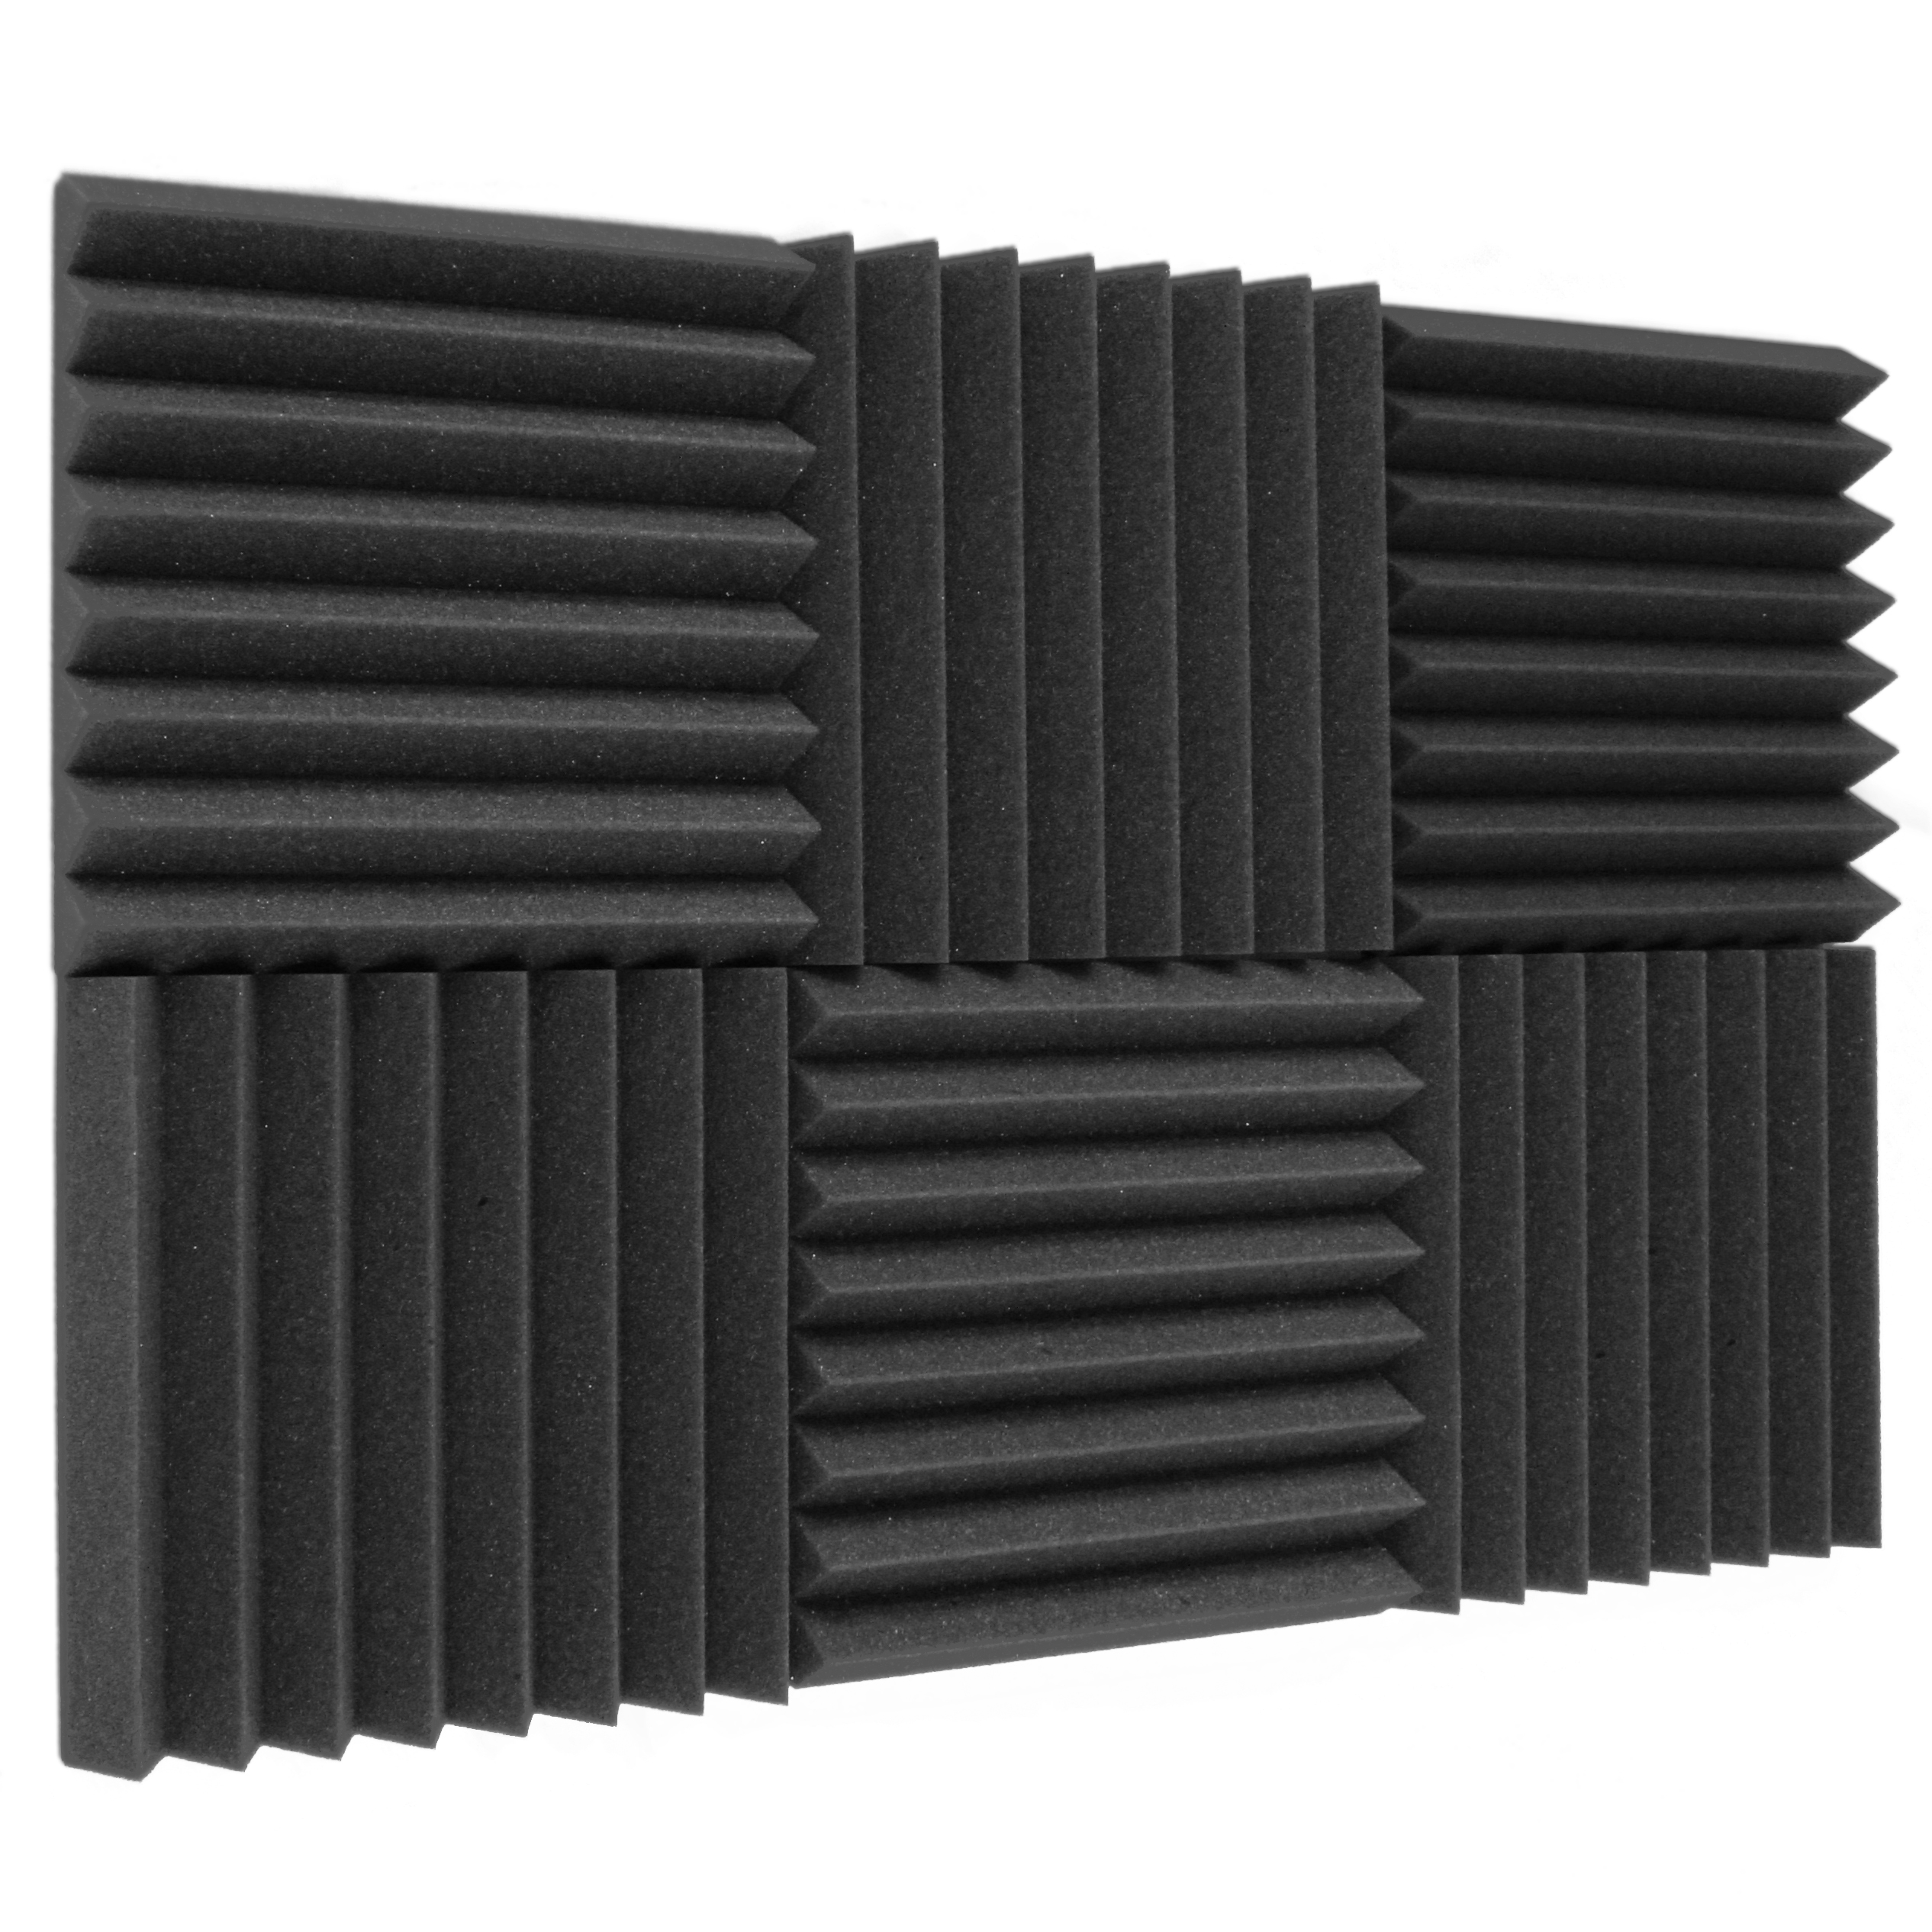 "6 Pack Acoustic Panels Studio Foam Wedges 2"" X 12"" X 12"", Charcoal"